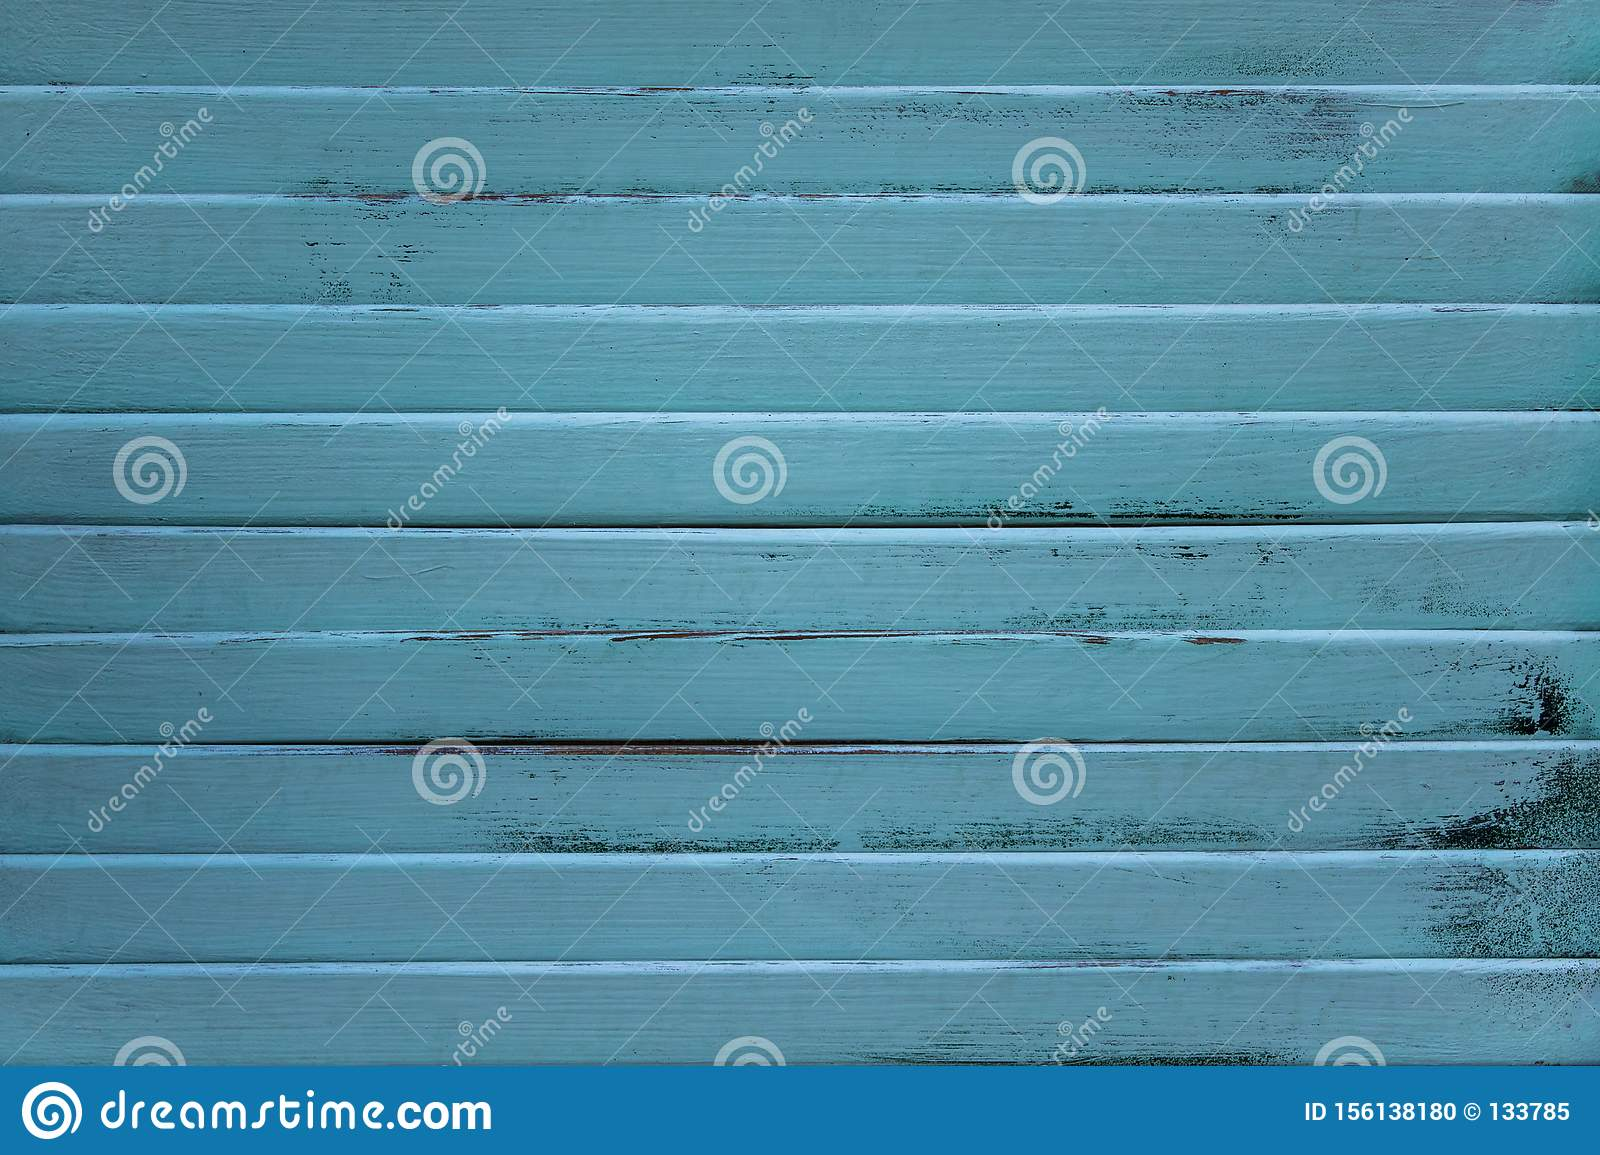 Wooden Blinds A Fence Of Blue Boards With Peeling Paint Horizontal Lines Rough Surface Texture Stock Photo Image Of Black Carpentry 156138180